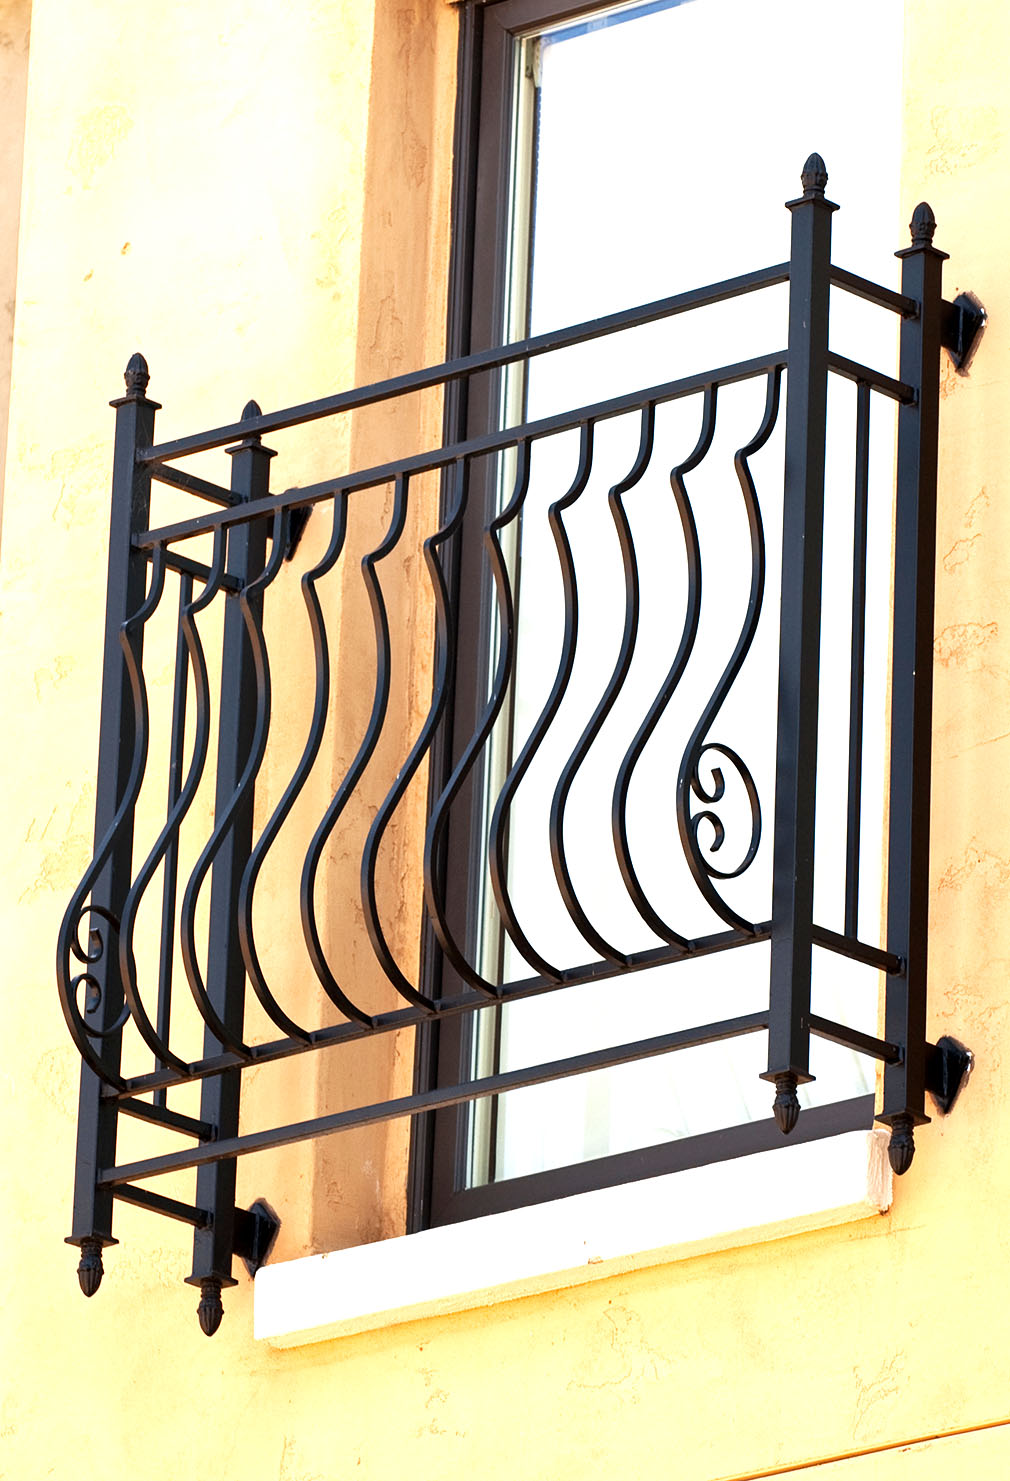 Finishing touches like finials and hand bent wrought iron scrollwork give your home a custom look